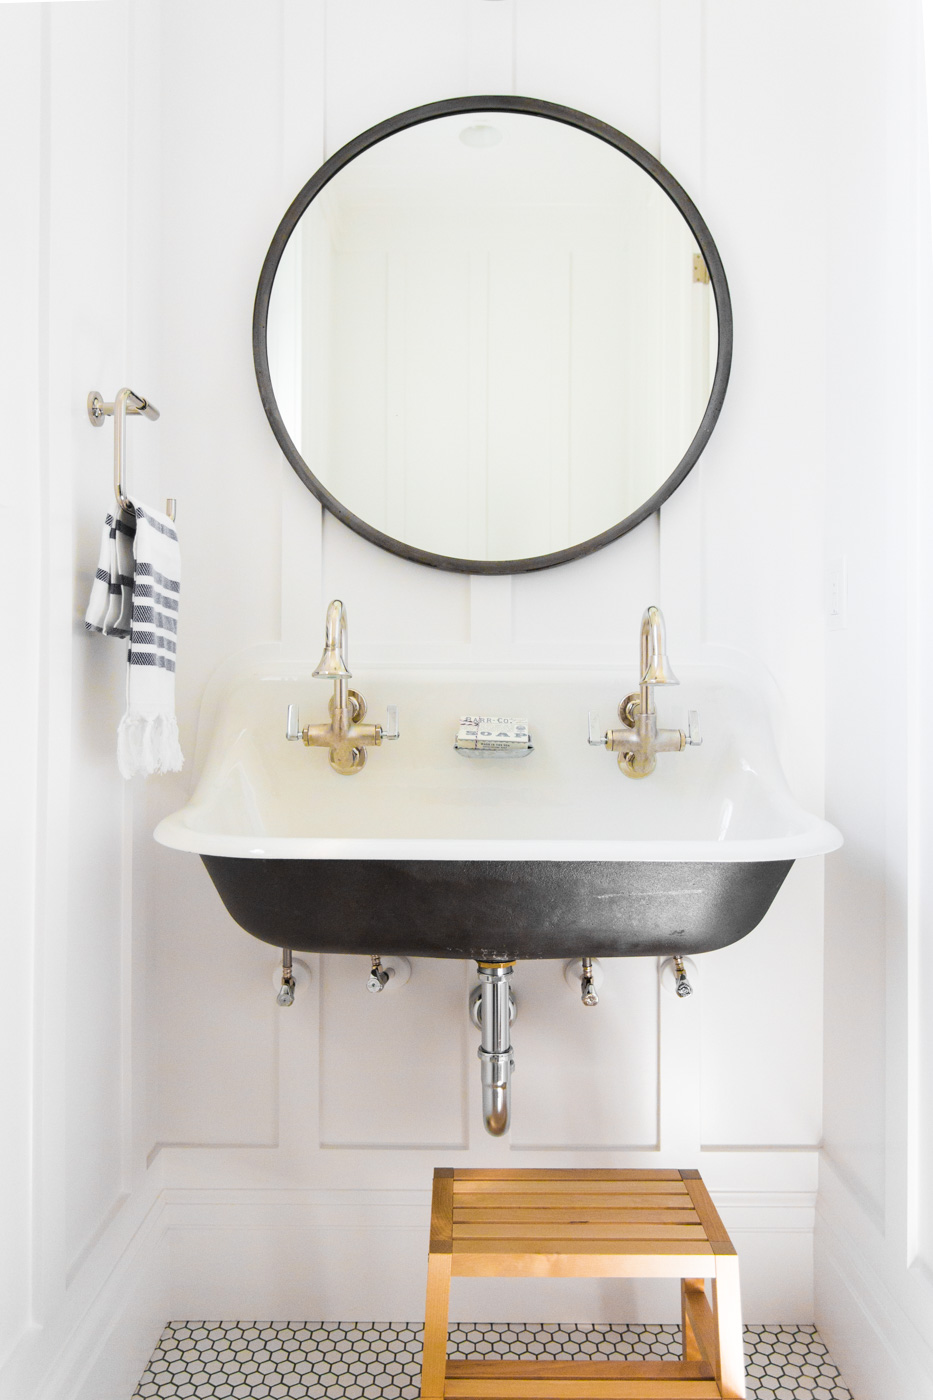 Wooden stepping stool beneath bathroom vanity